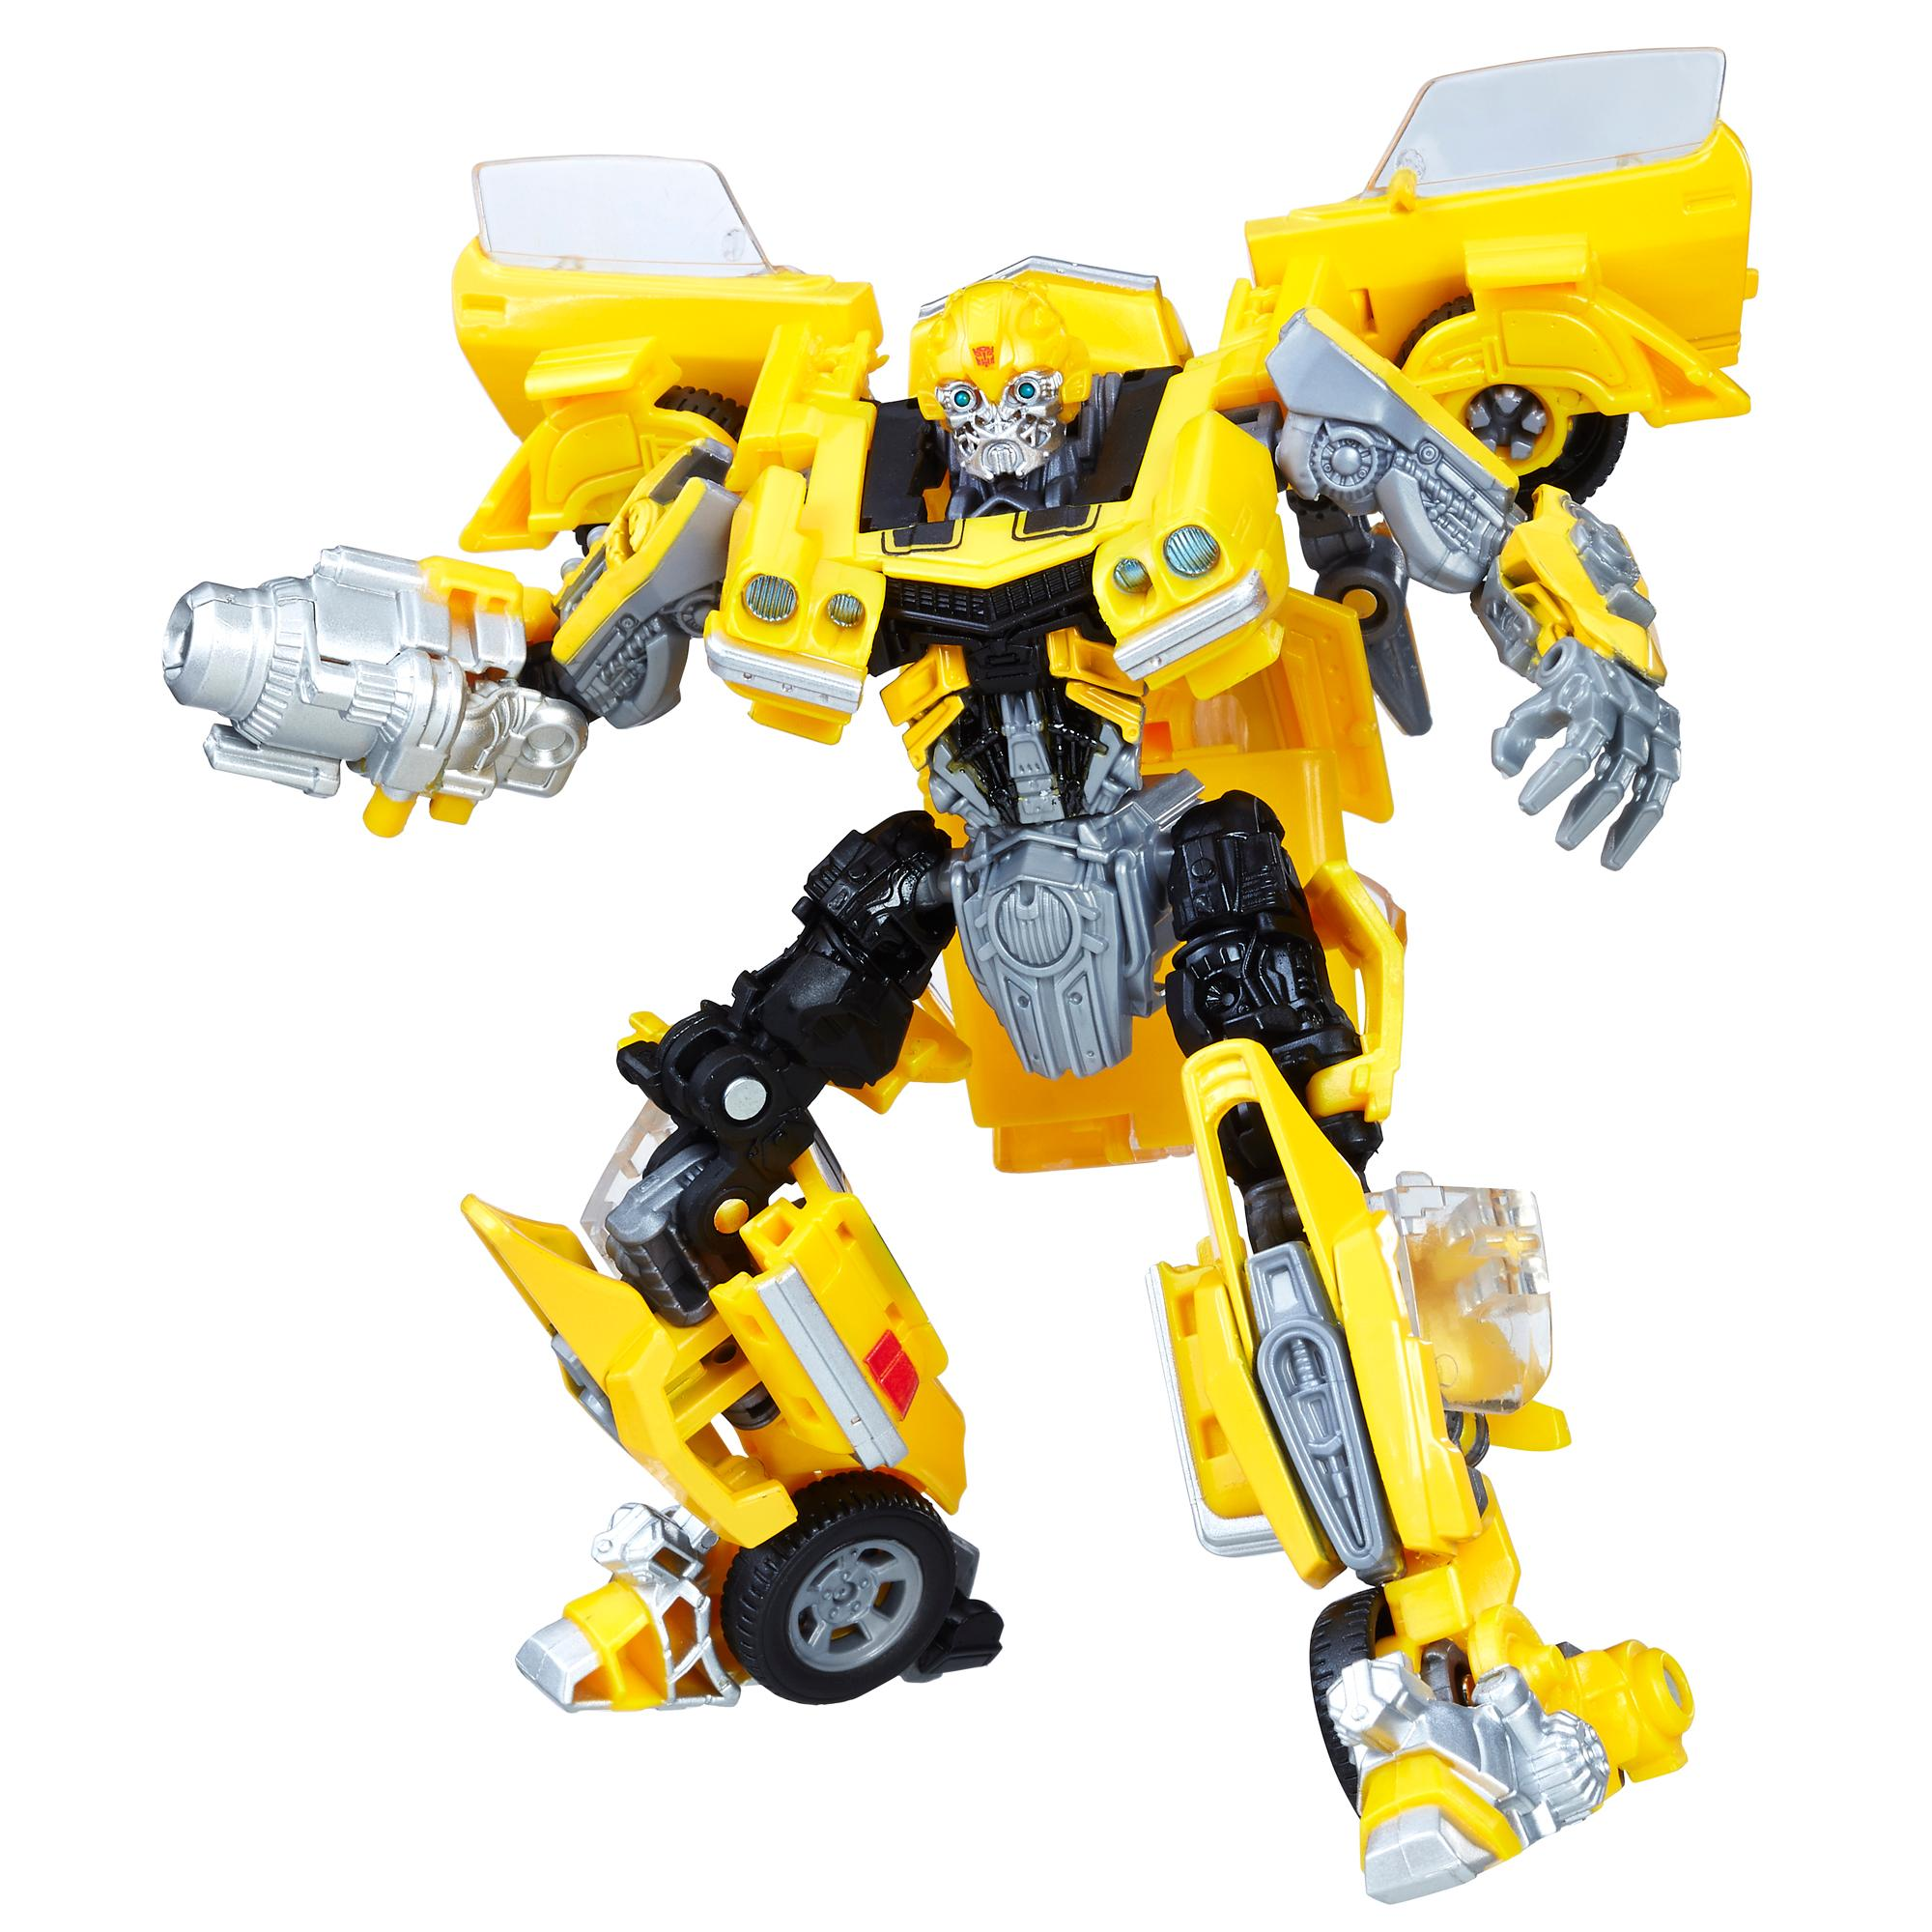 Transformers Studio Series 01 Deluxe Class Movie 1 Bumblebee